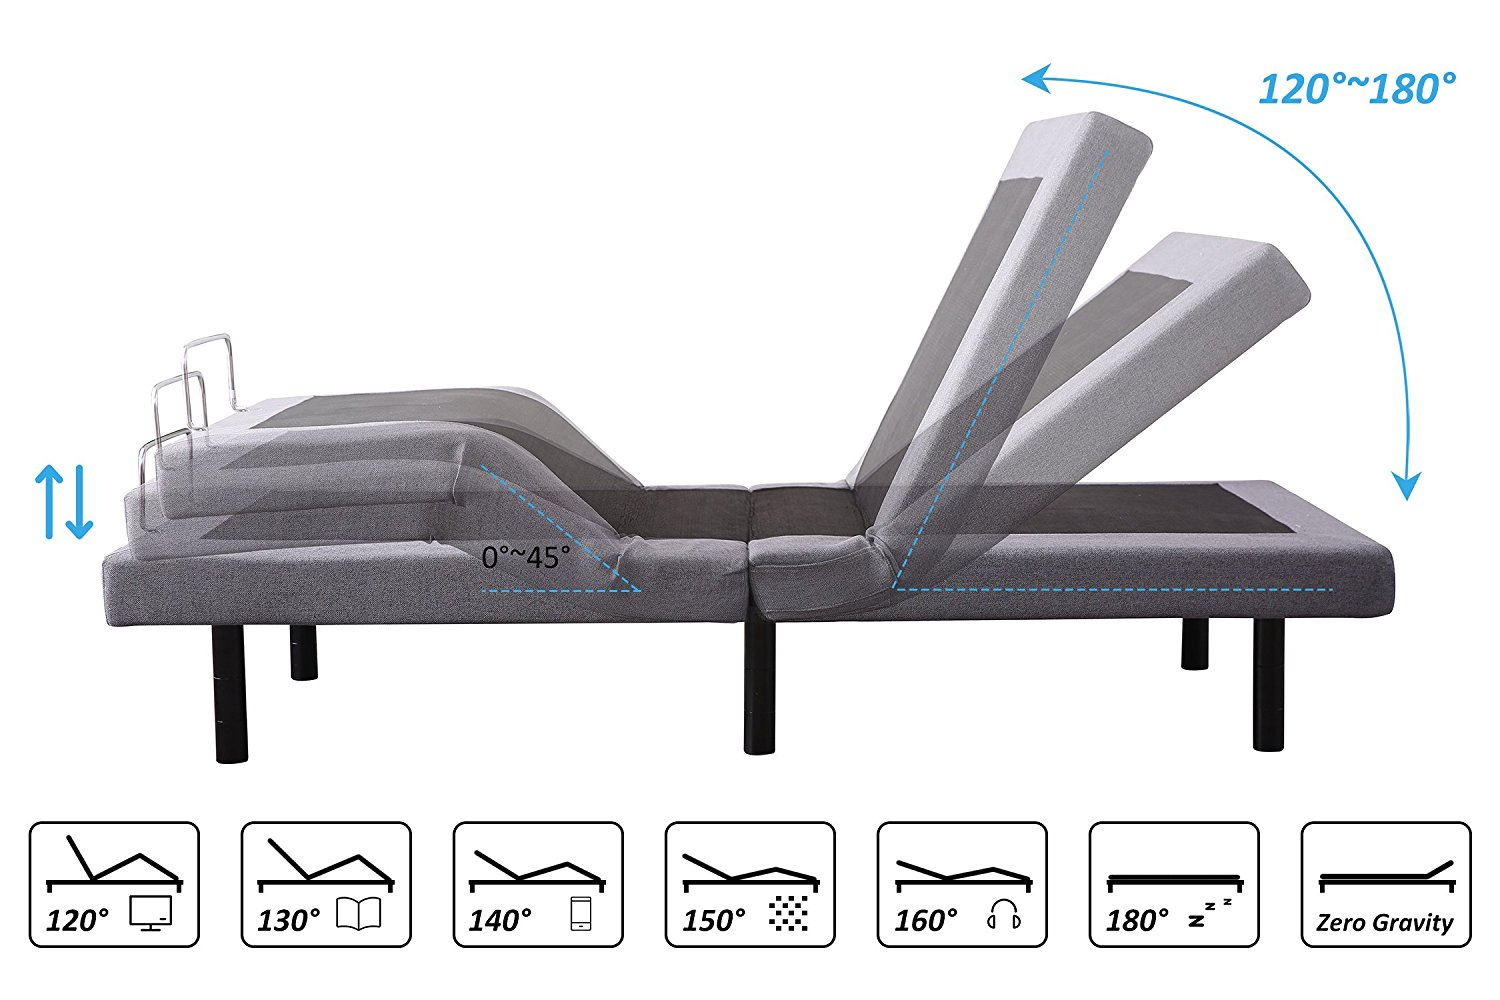 Leisuit Adjustable Bed Frame Head & Feet Adjustments